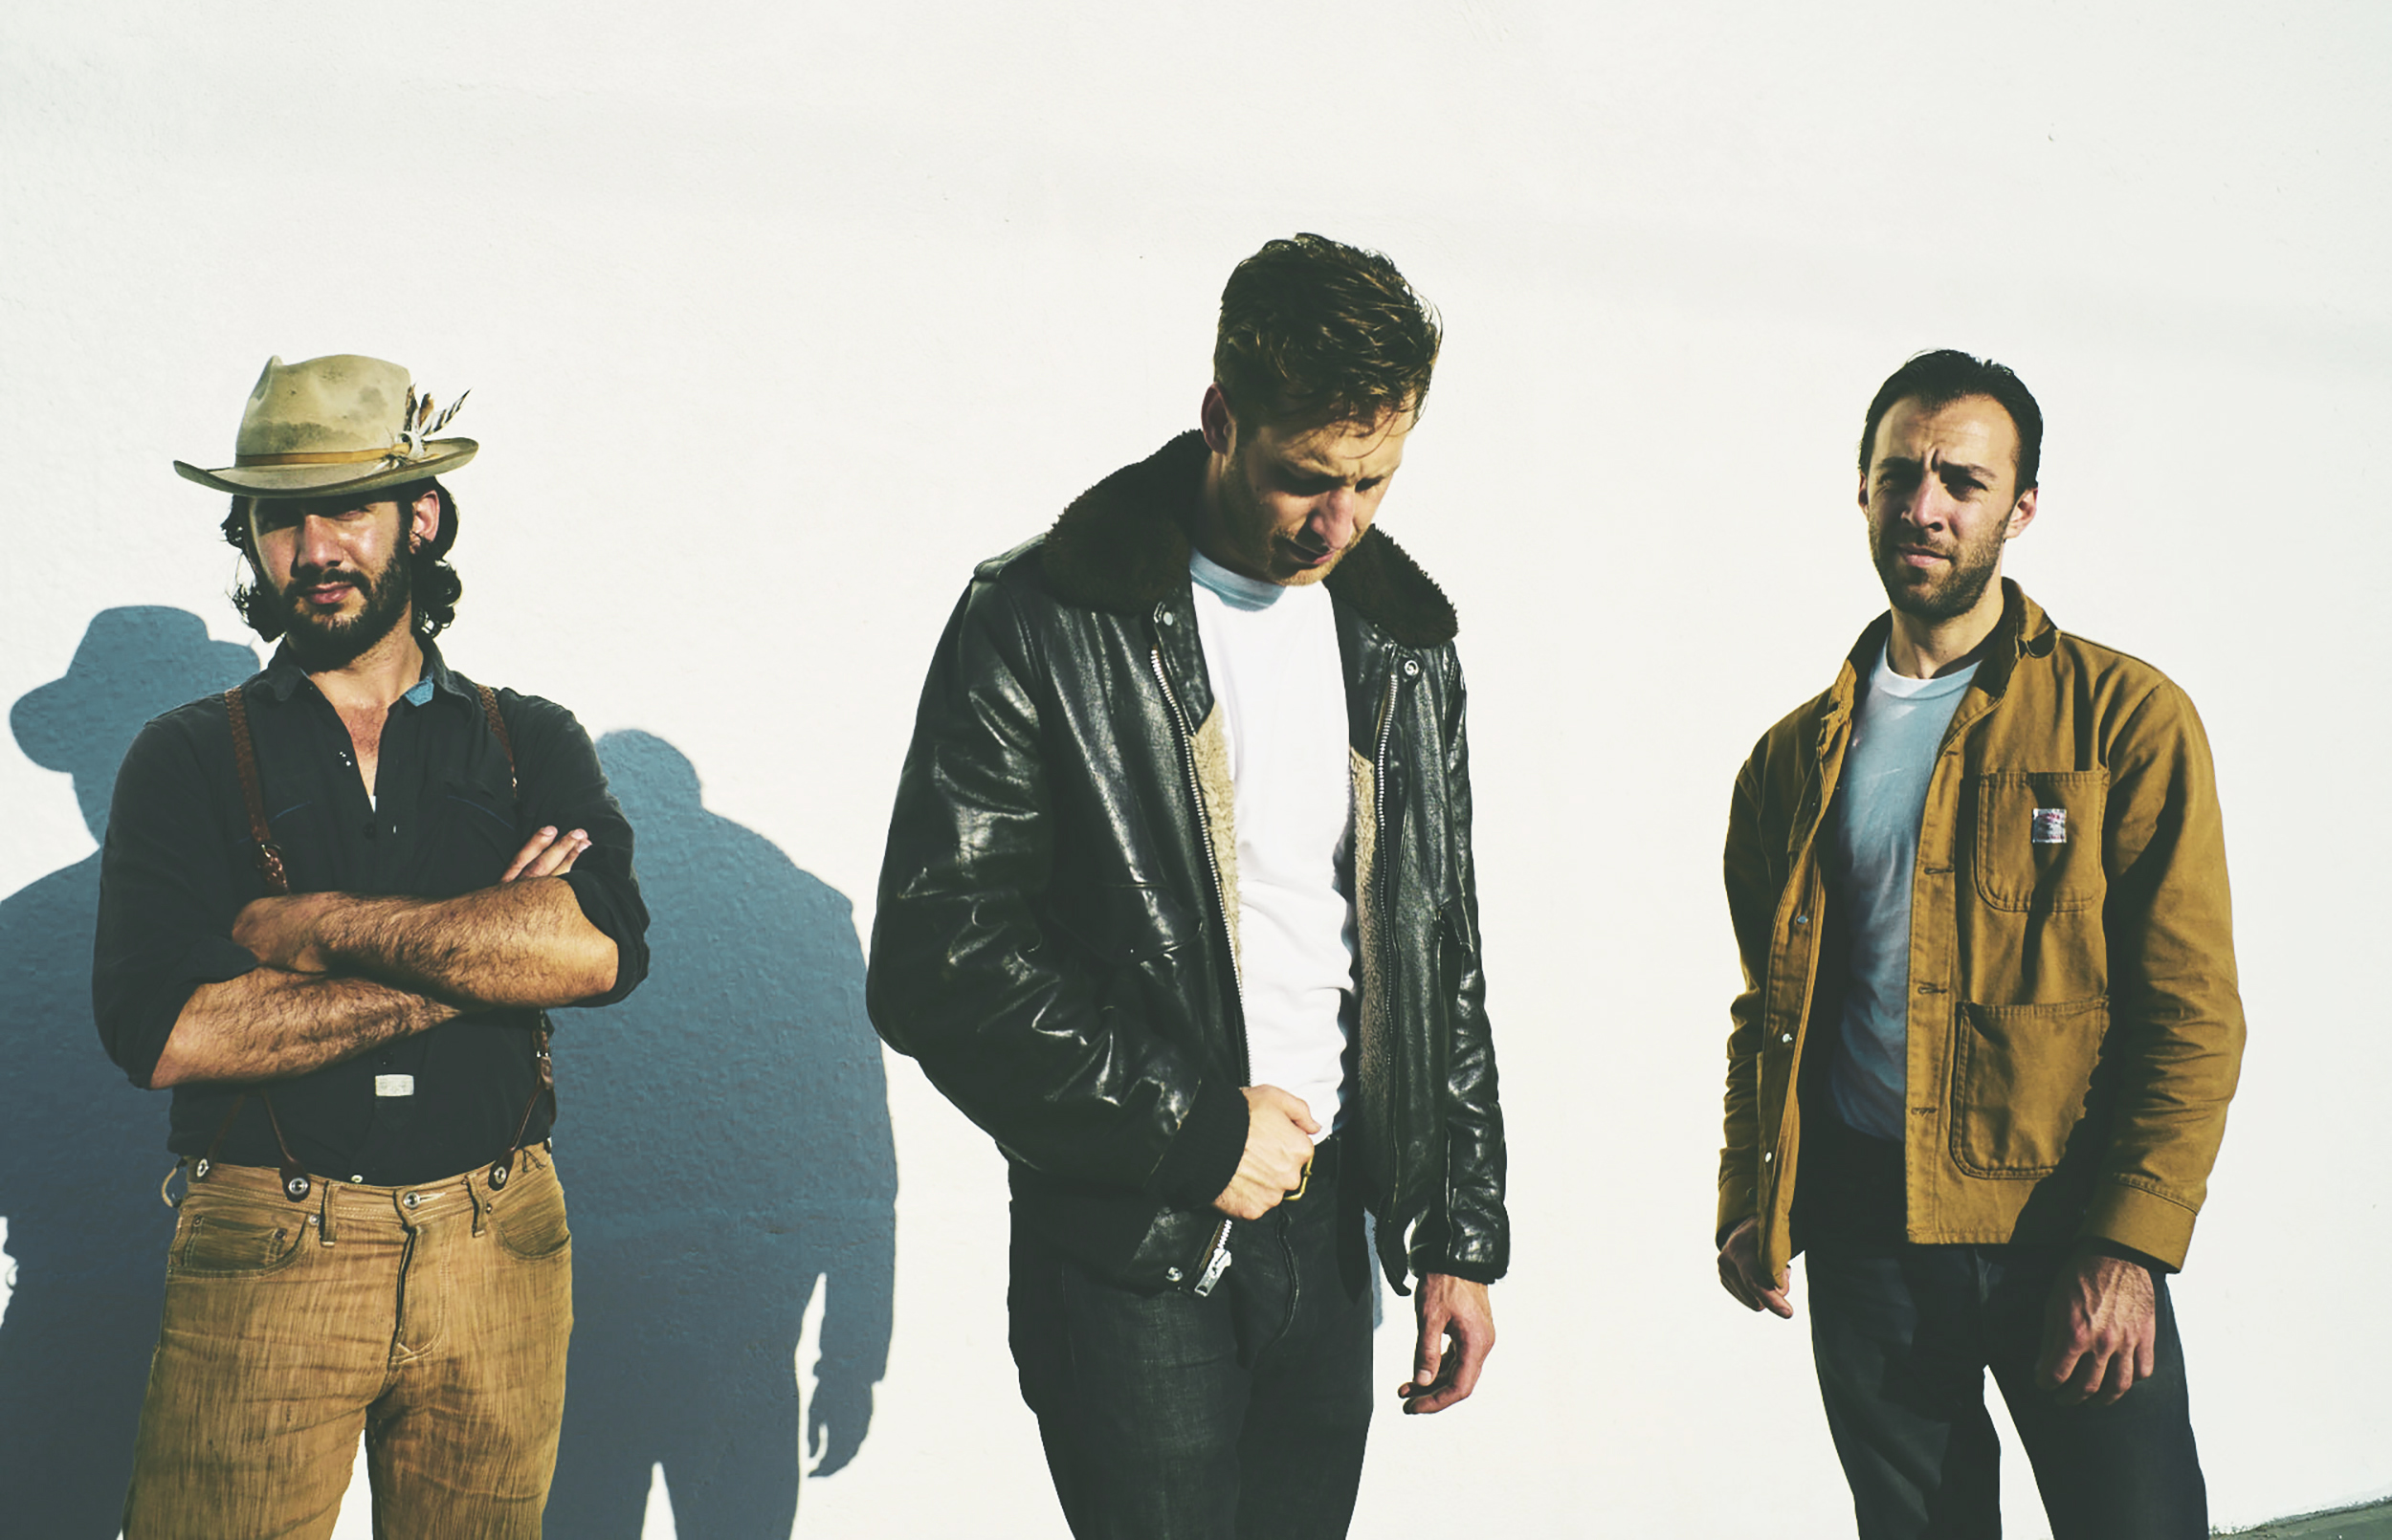 concepcion_news_amr_01.jpg